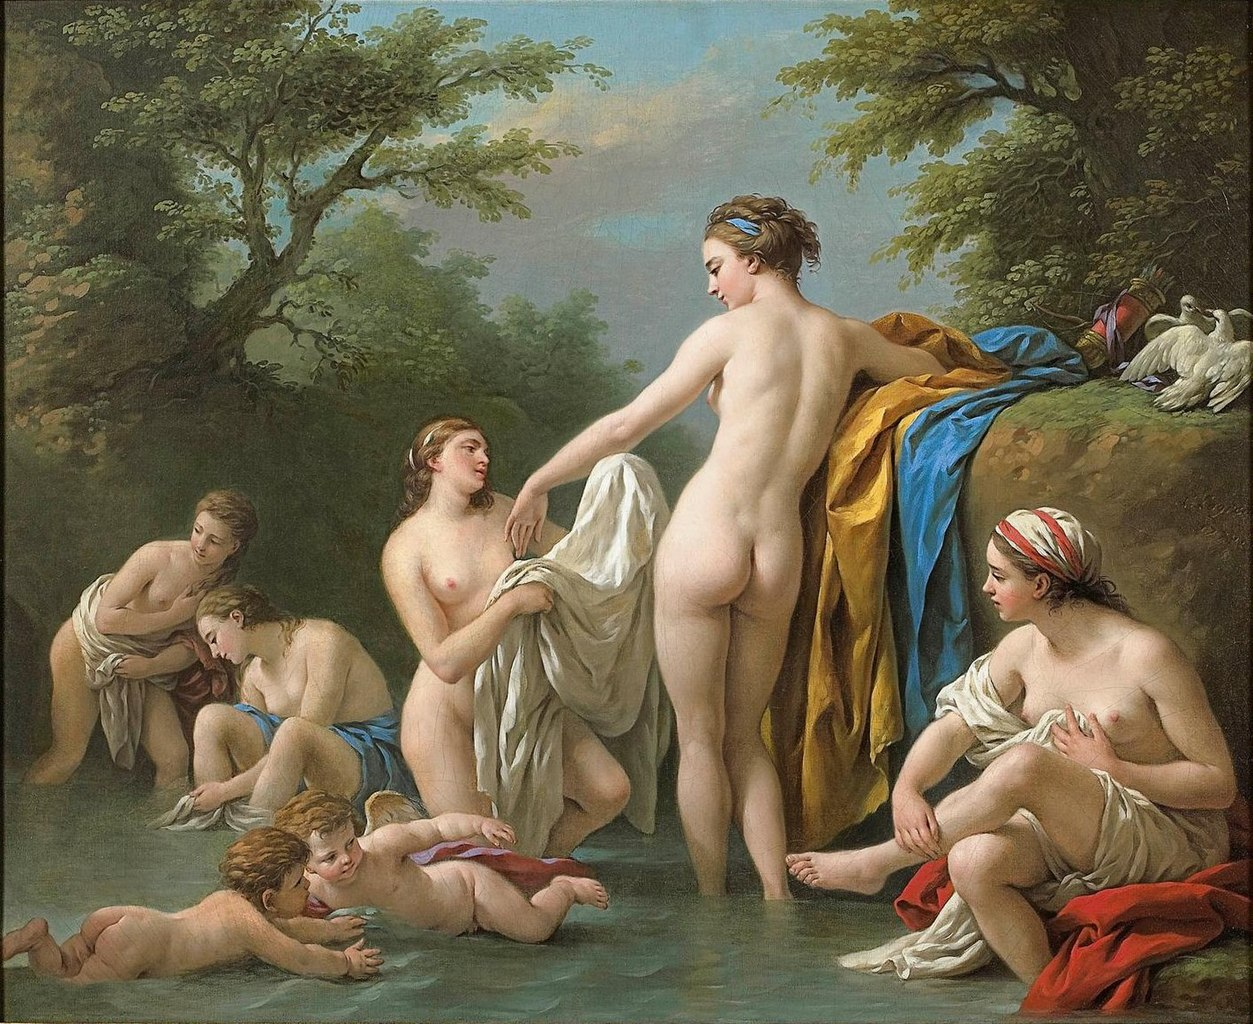 FileVenus and Nymphs Bathing a painting by French artist Louis JeanFrancois Lagreneejpg